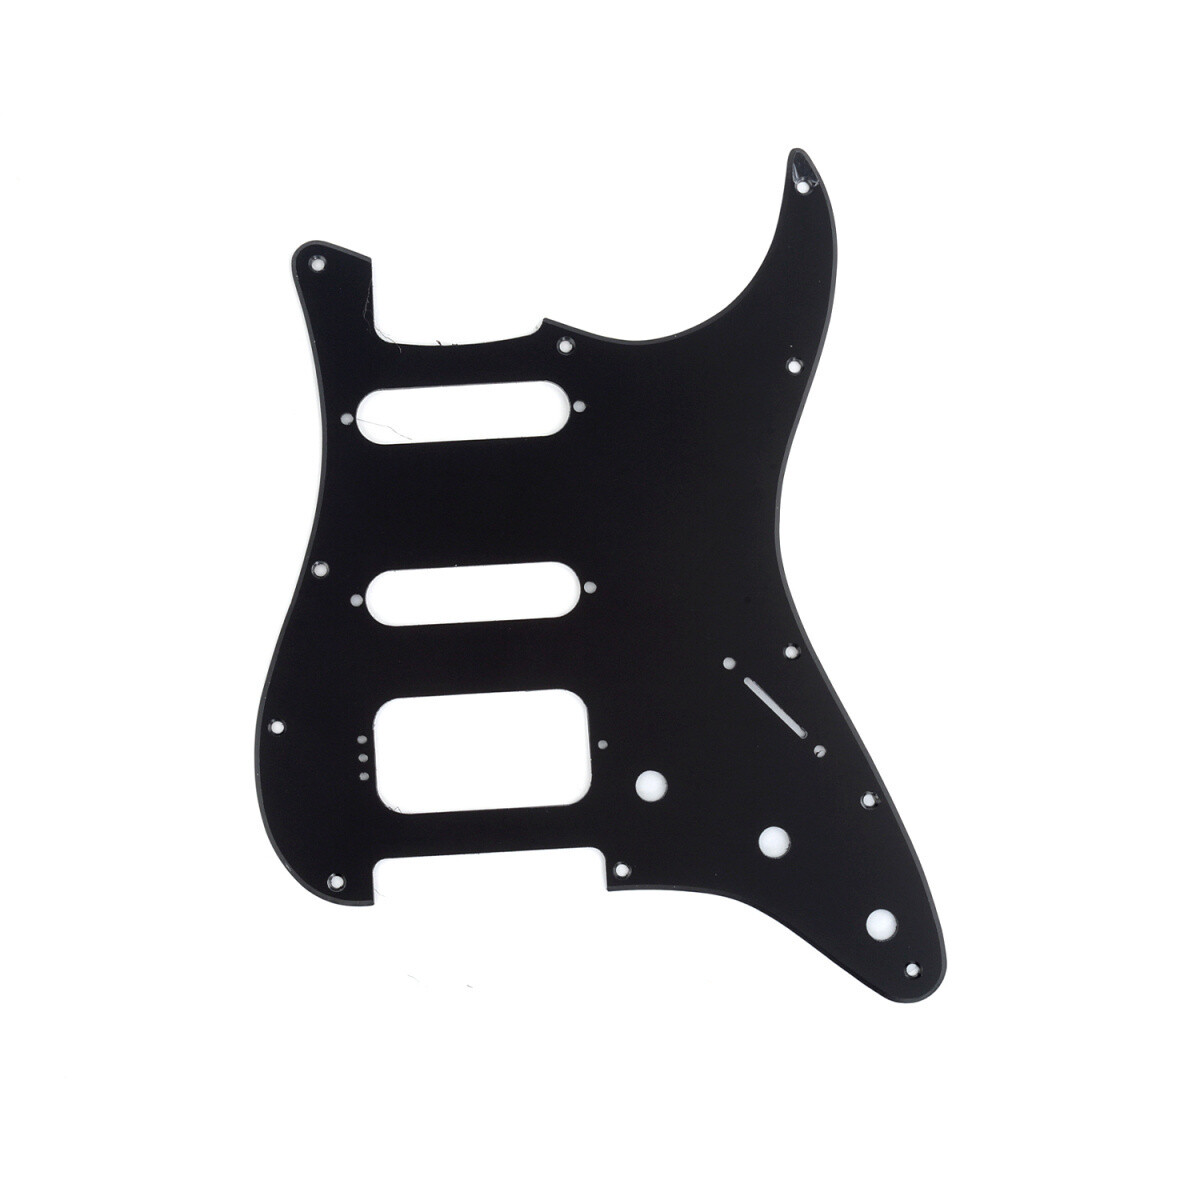 Brio 11-Hole Modern Style Strat HSS Pickguard for American Stratocaster Matte Black 1 Ply